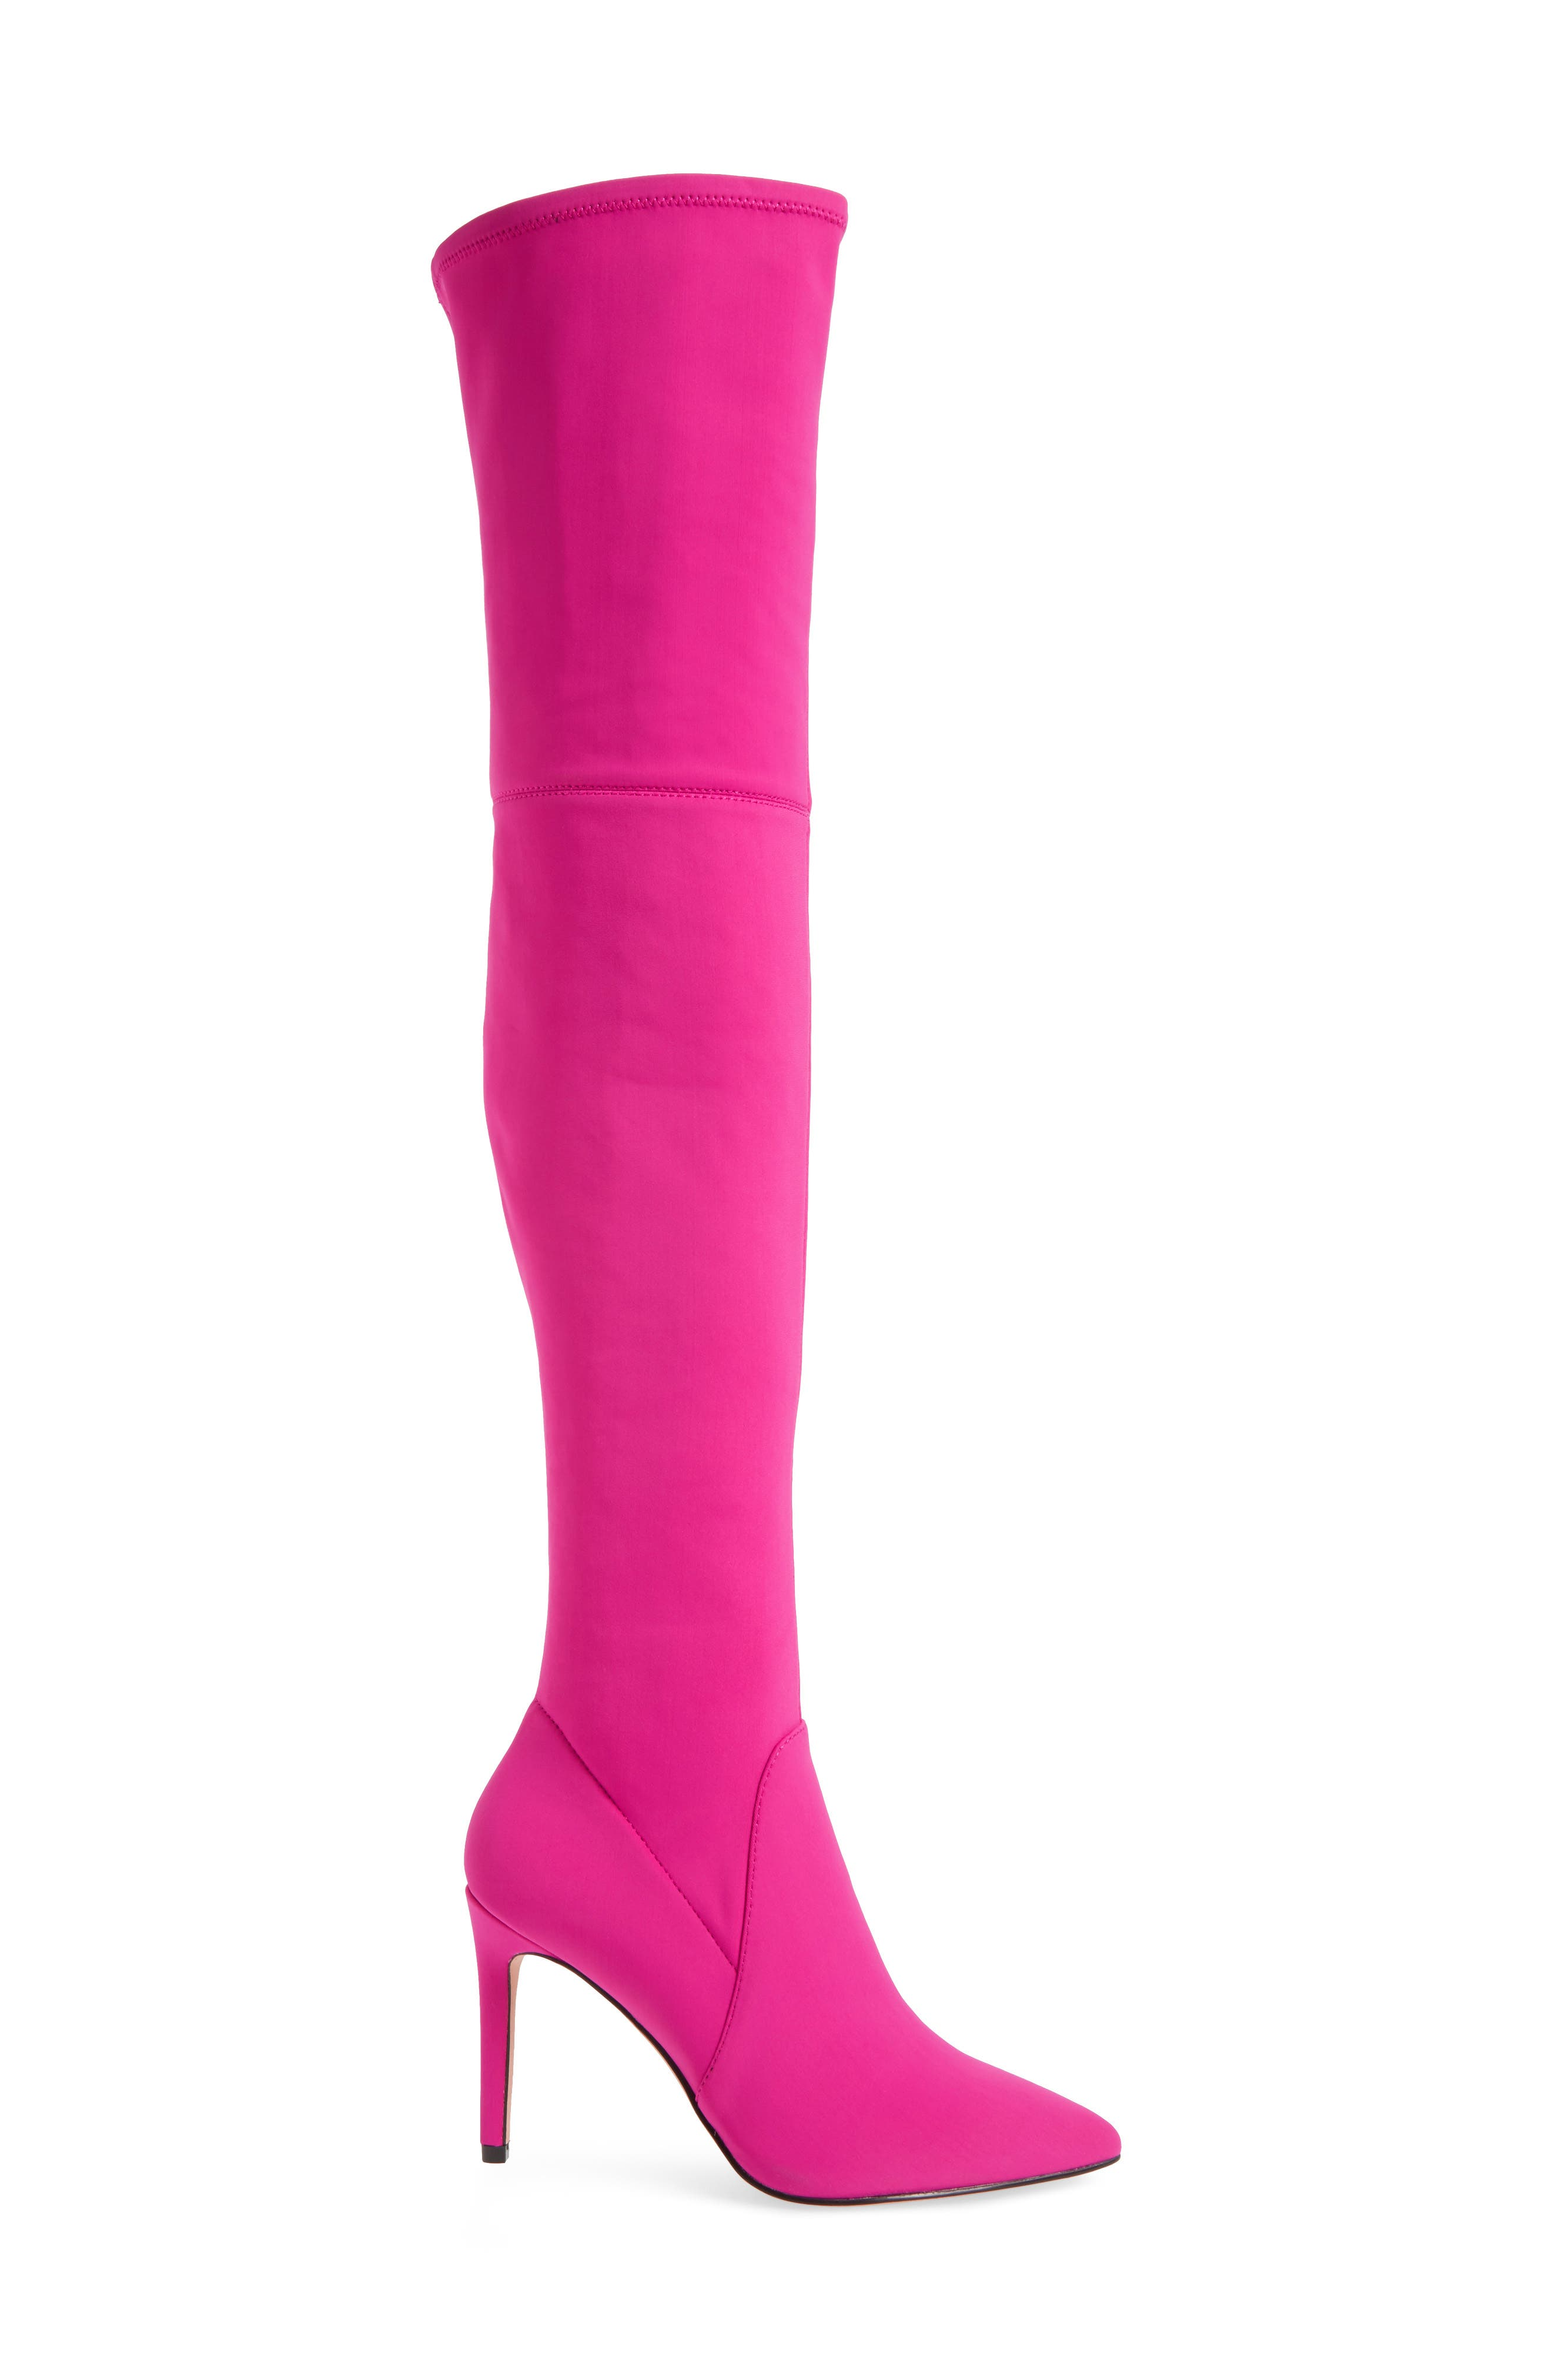 Nara Over the Knee Boot,                             Alternate thumbnail 3, color,                             Pink Stretch